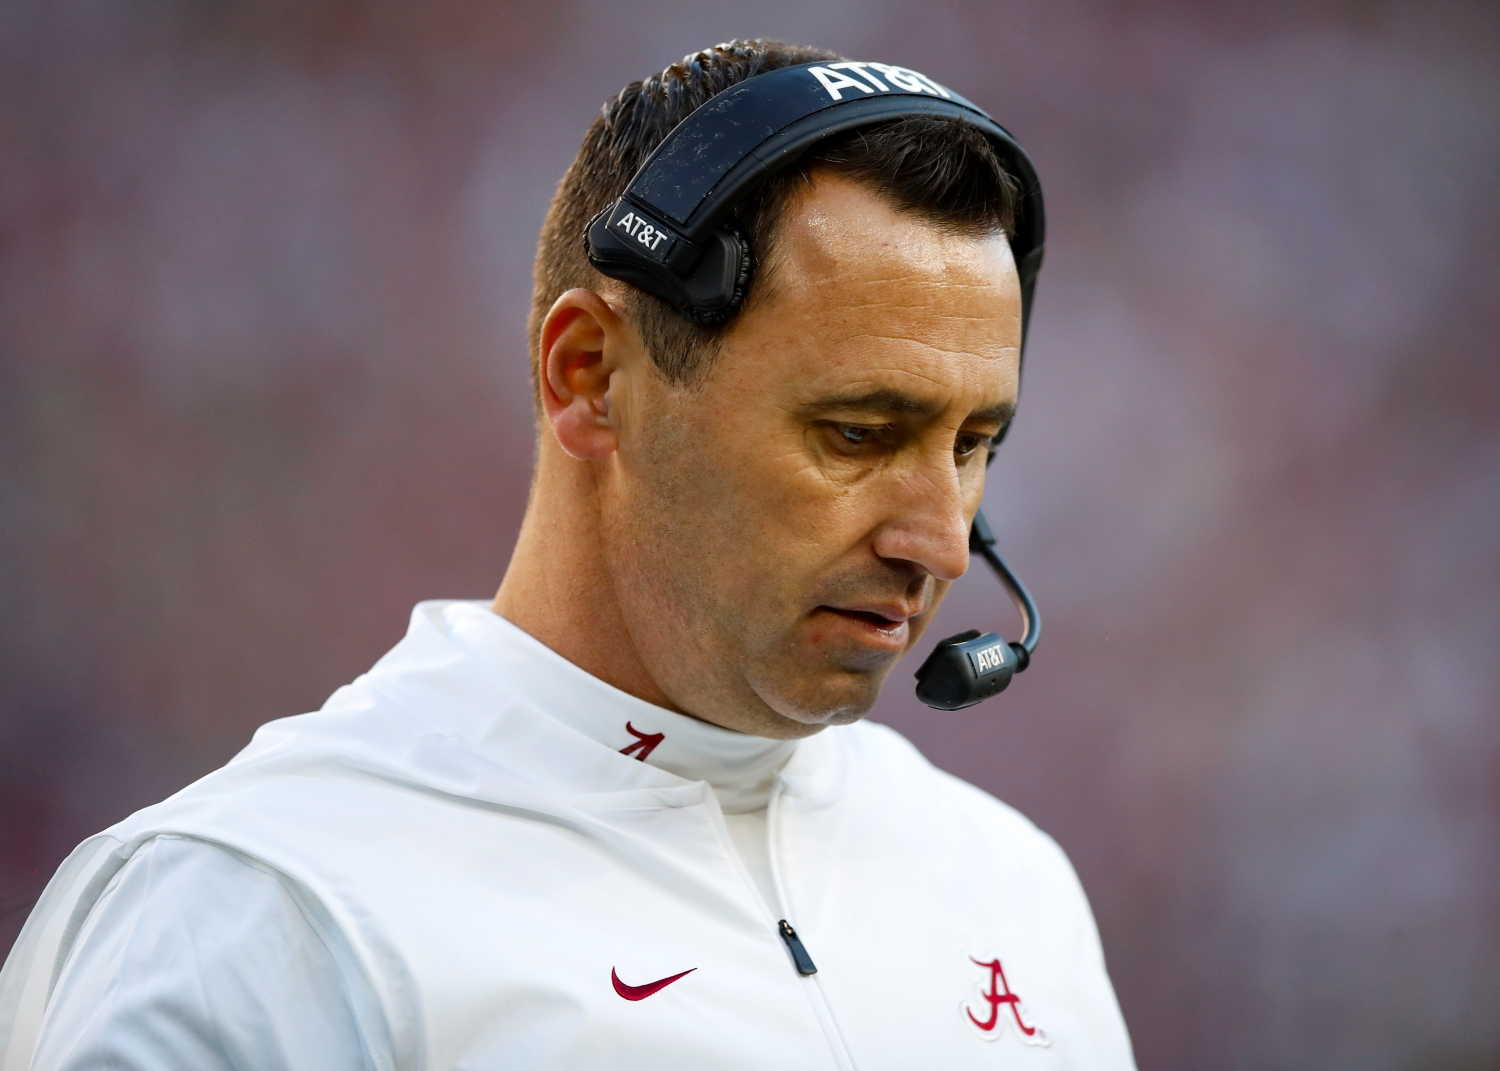 Alabama Crimson Tide offensive coordinator / Quarterbacks coach Steve Sarkisian looks on during the first half against the LSU Tigers at Bryant-Denny Stadium.